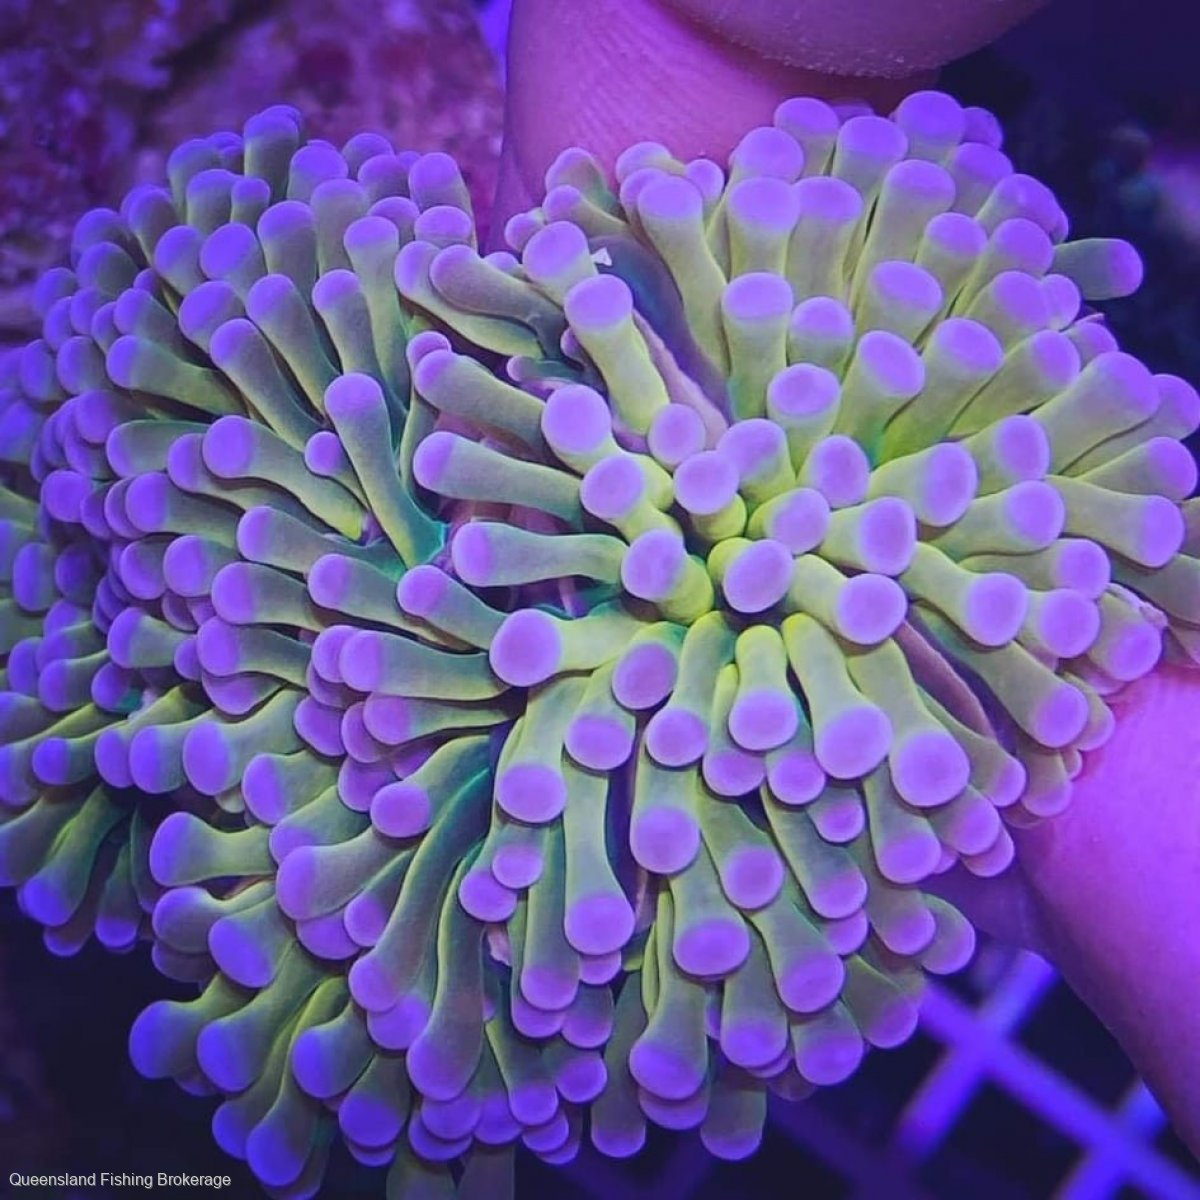 Coral Licence and Quota Package